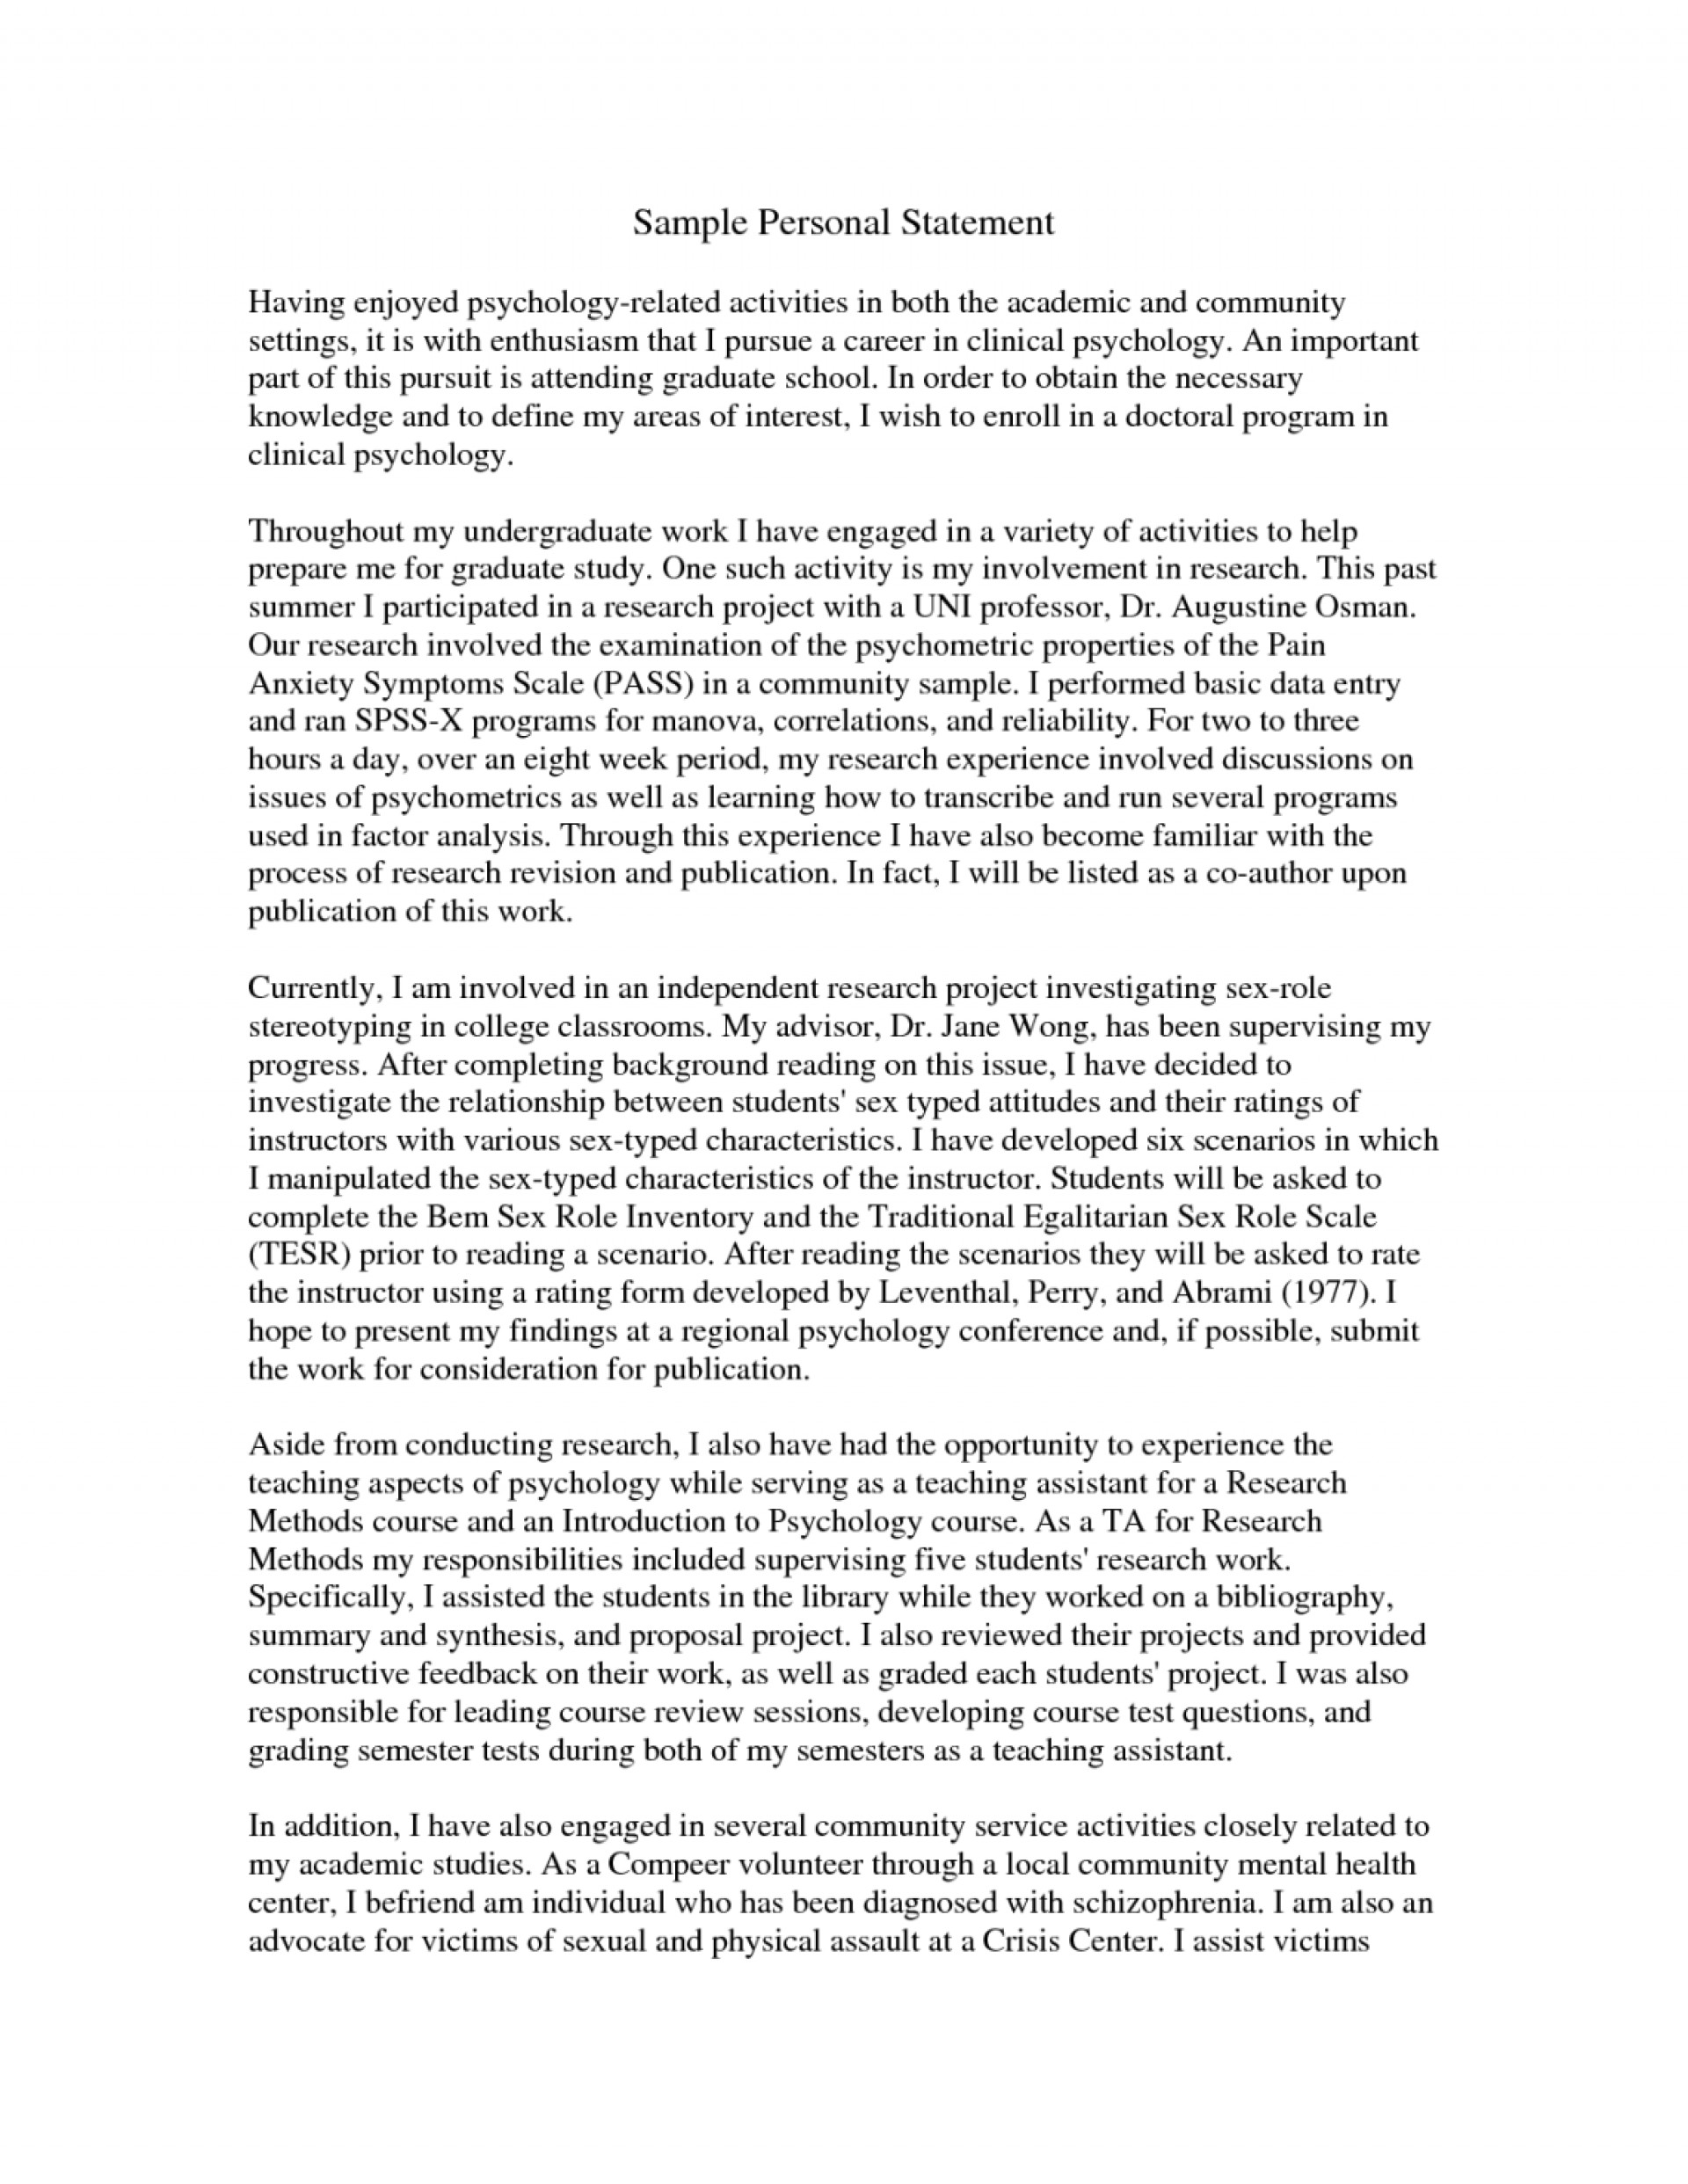 011 Essay Example Never Give Up Popular Dissertation Proposal Writing Website For School Unbelievable Title In English 1920